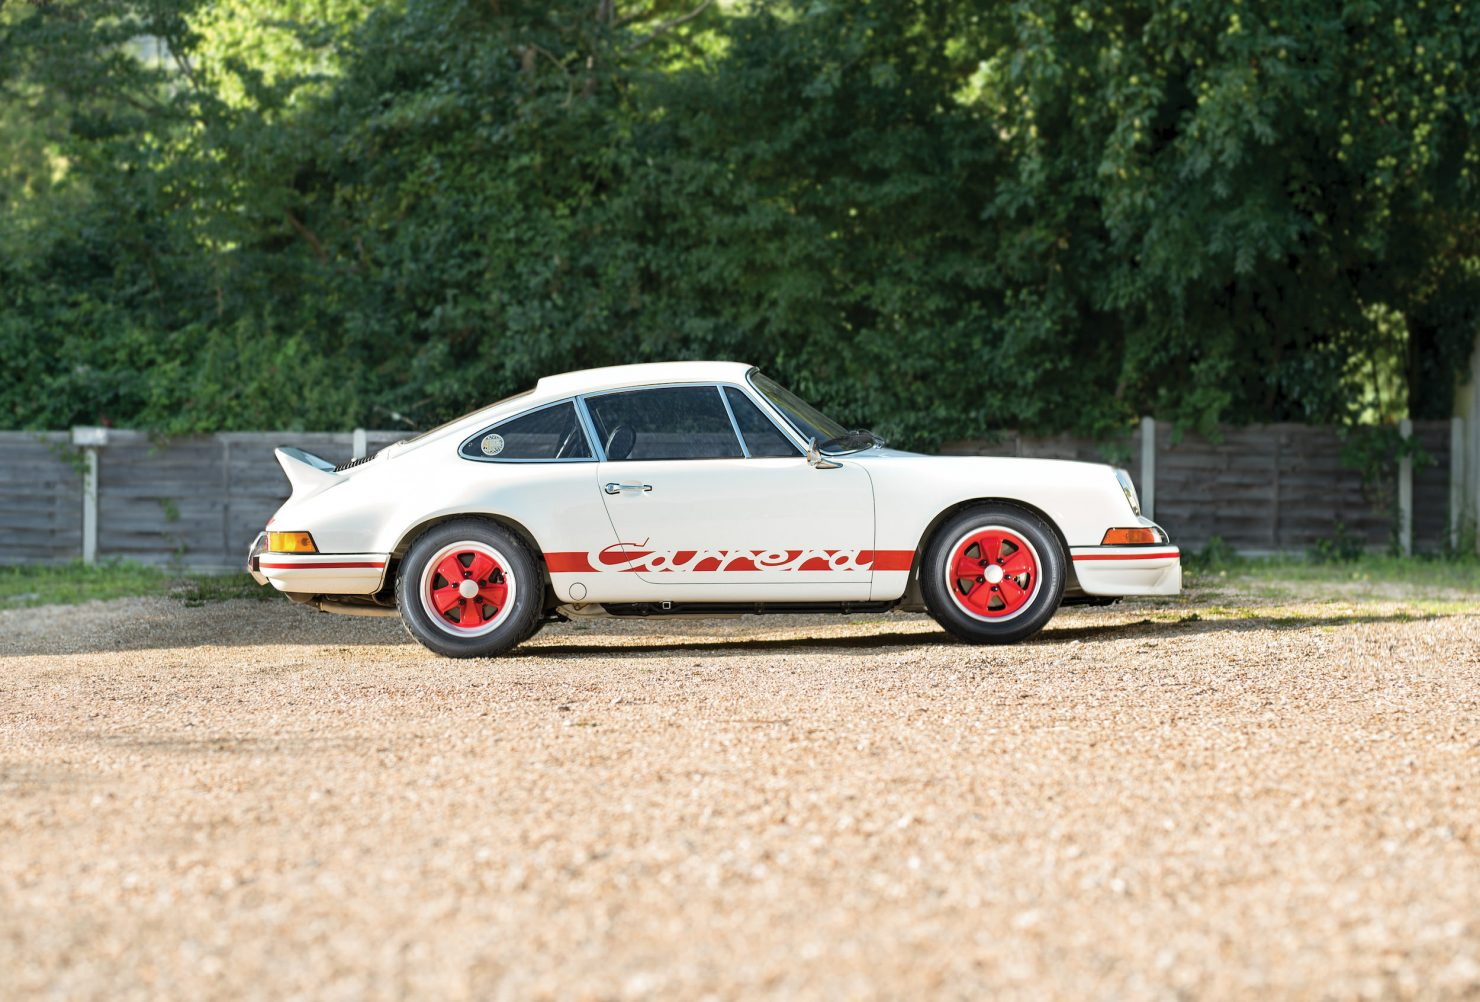 Porsche 911 Carrera RS 2.7 3 1480x1002 - 1973 Porsche 911 Carrera RS 2.7 Lightweight